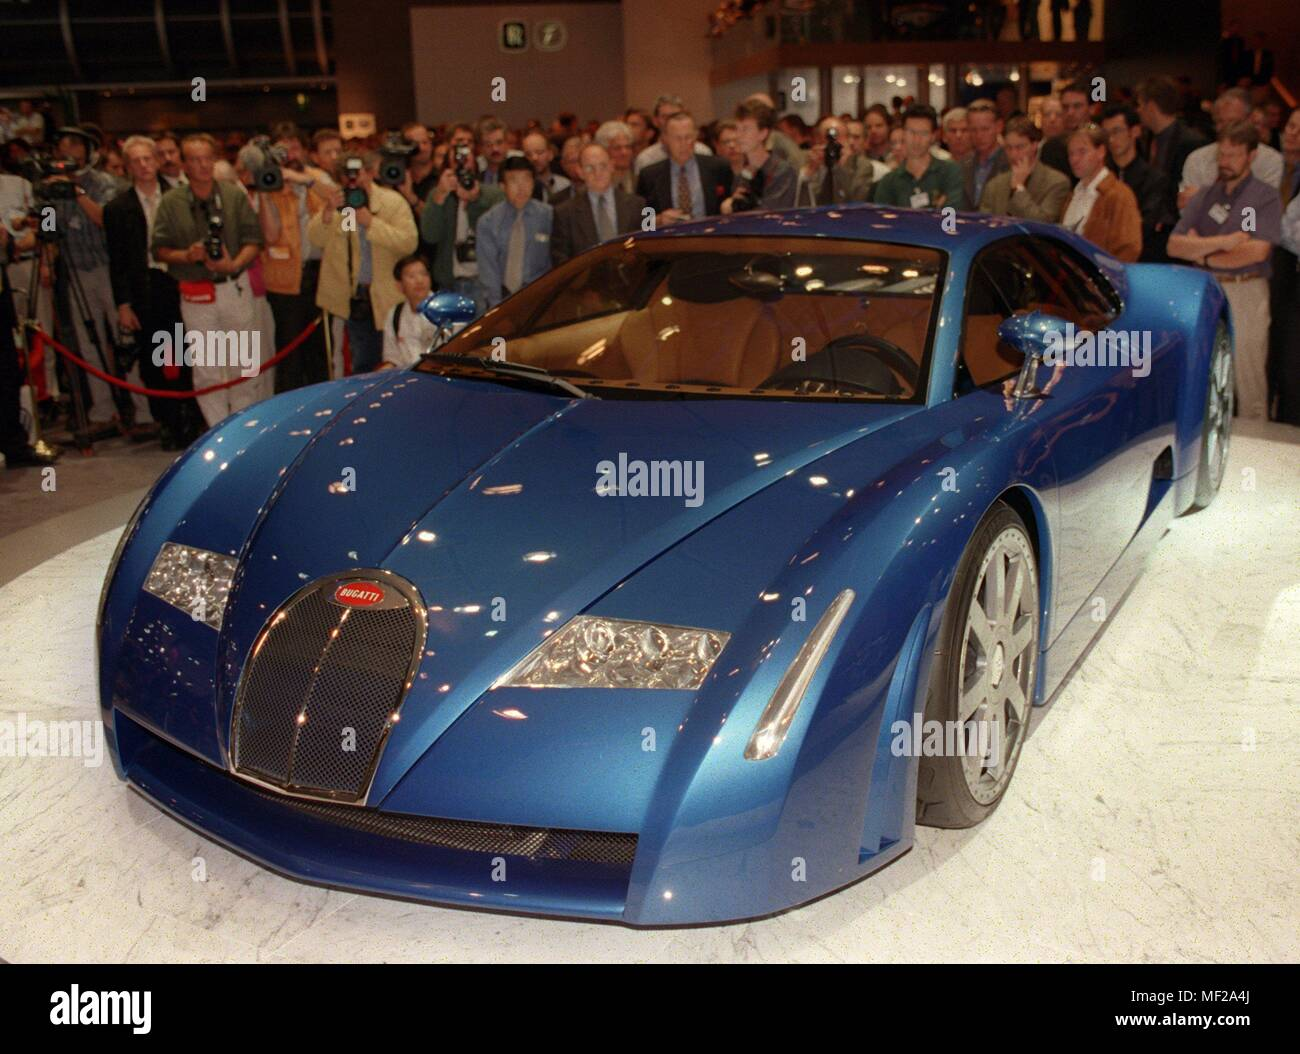 A Bugatti sports car will be presented by Volkswagen at the International Motor Show (IAA) in Frankfurt on September 14, 1999. Bugatti 18/3 Chiron is the 4.42-meter-long sports car study of VW Group subsidiary with an eighteen-cylinder engine in the rear and a carbon fiber body. Even before the official start on 16.9. opened the 58th International Motor Show on 14.9. the expected 10000 media representatives their halls. Around 1,200 suppliers from 43 countries present their products - around 80 fewer than at the IAA in 1997. | usage worldwide - Stock Image